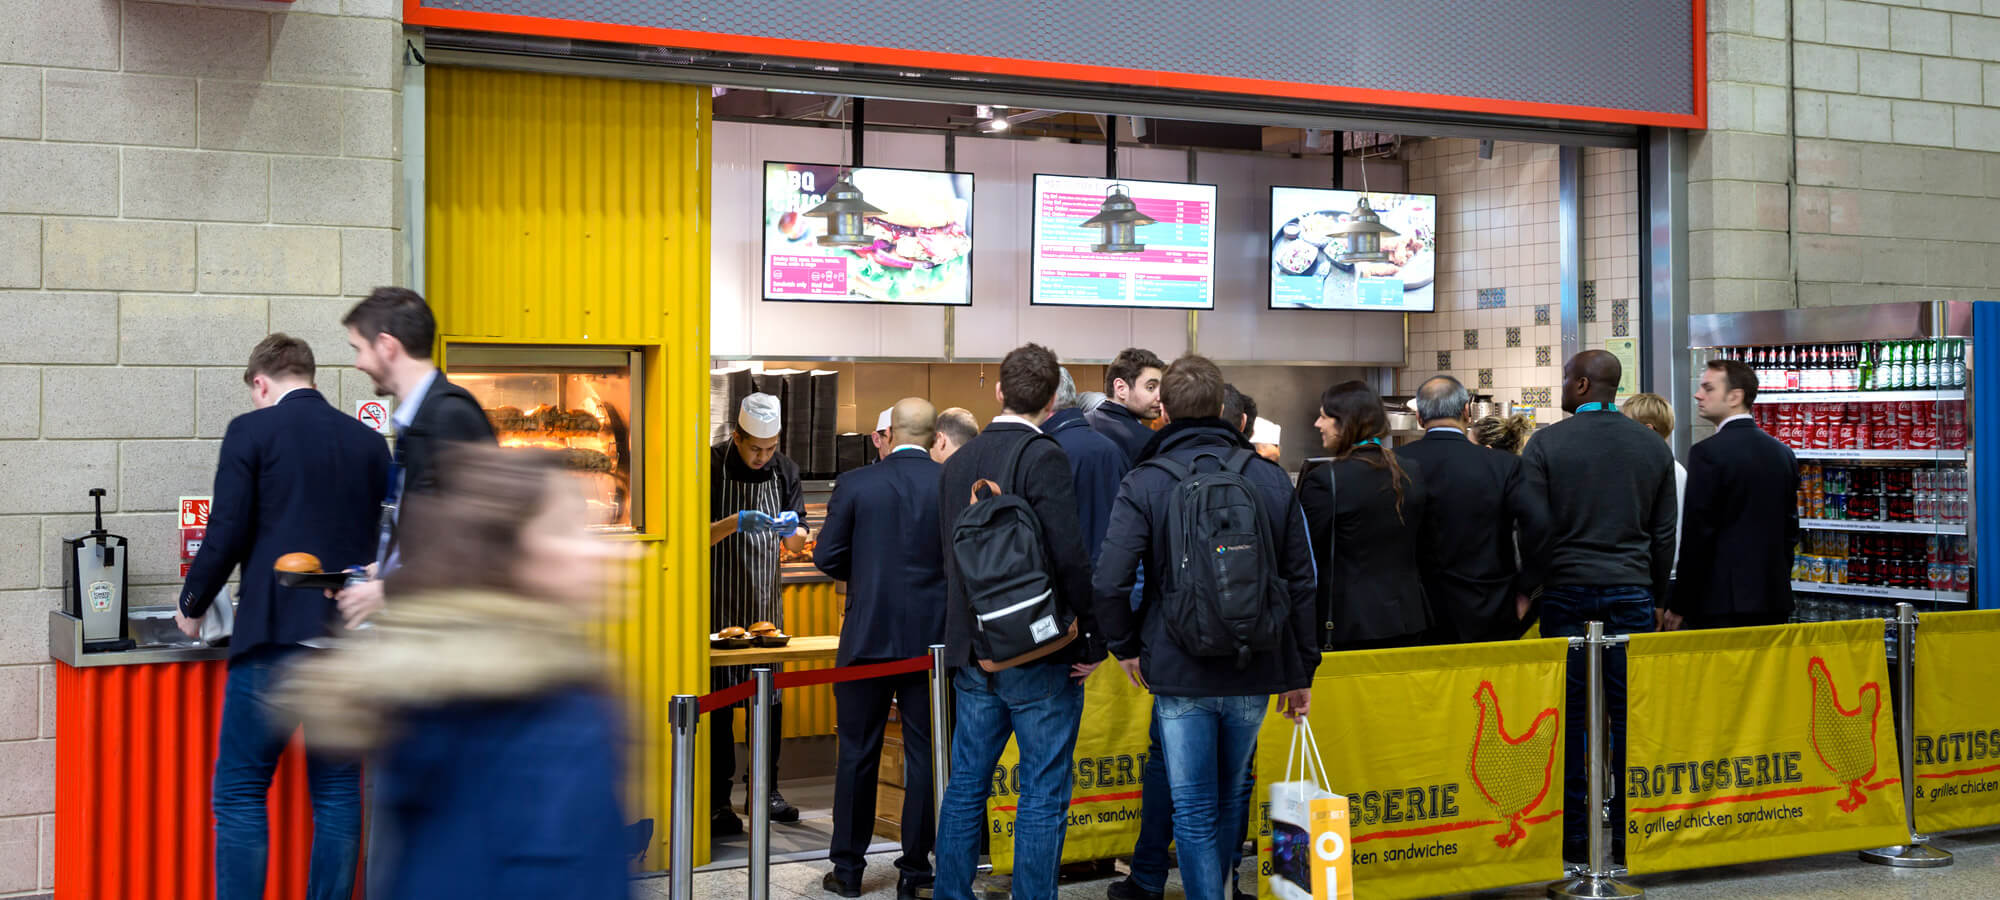 Eclipse Digital Media - Digital Signage & AV Solutions - Digital Menu Boards - Chicken Rotisserie London ExCel